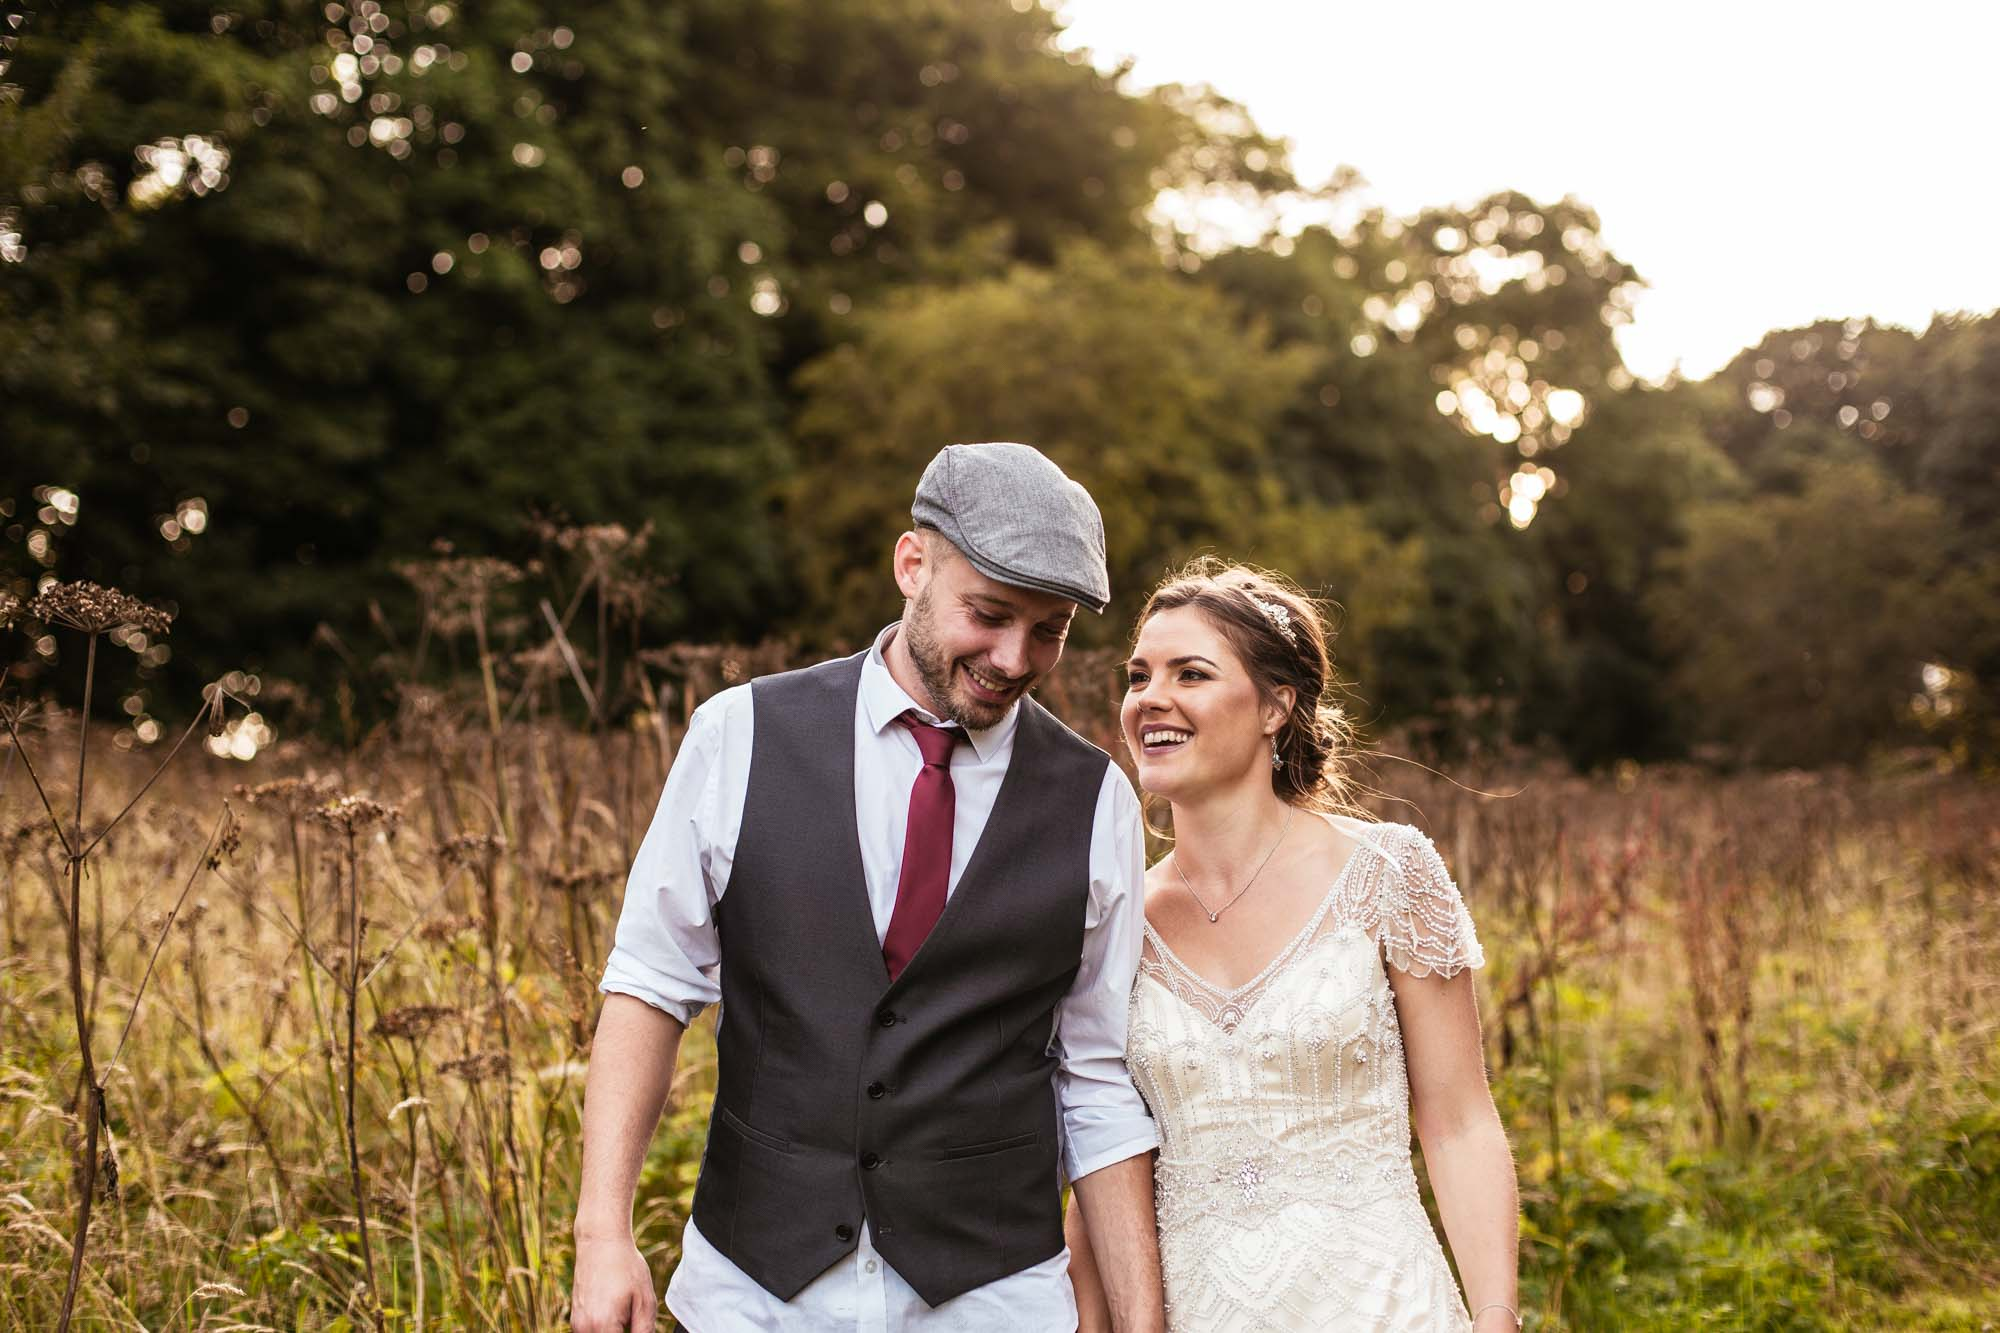 Alternative Wedding Photographer Hargate Hall